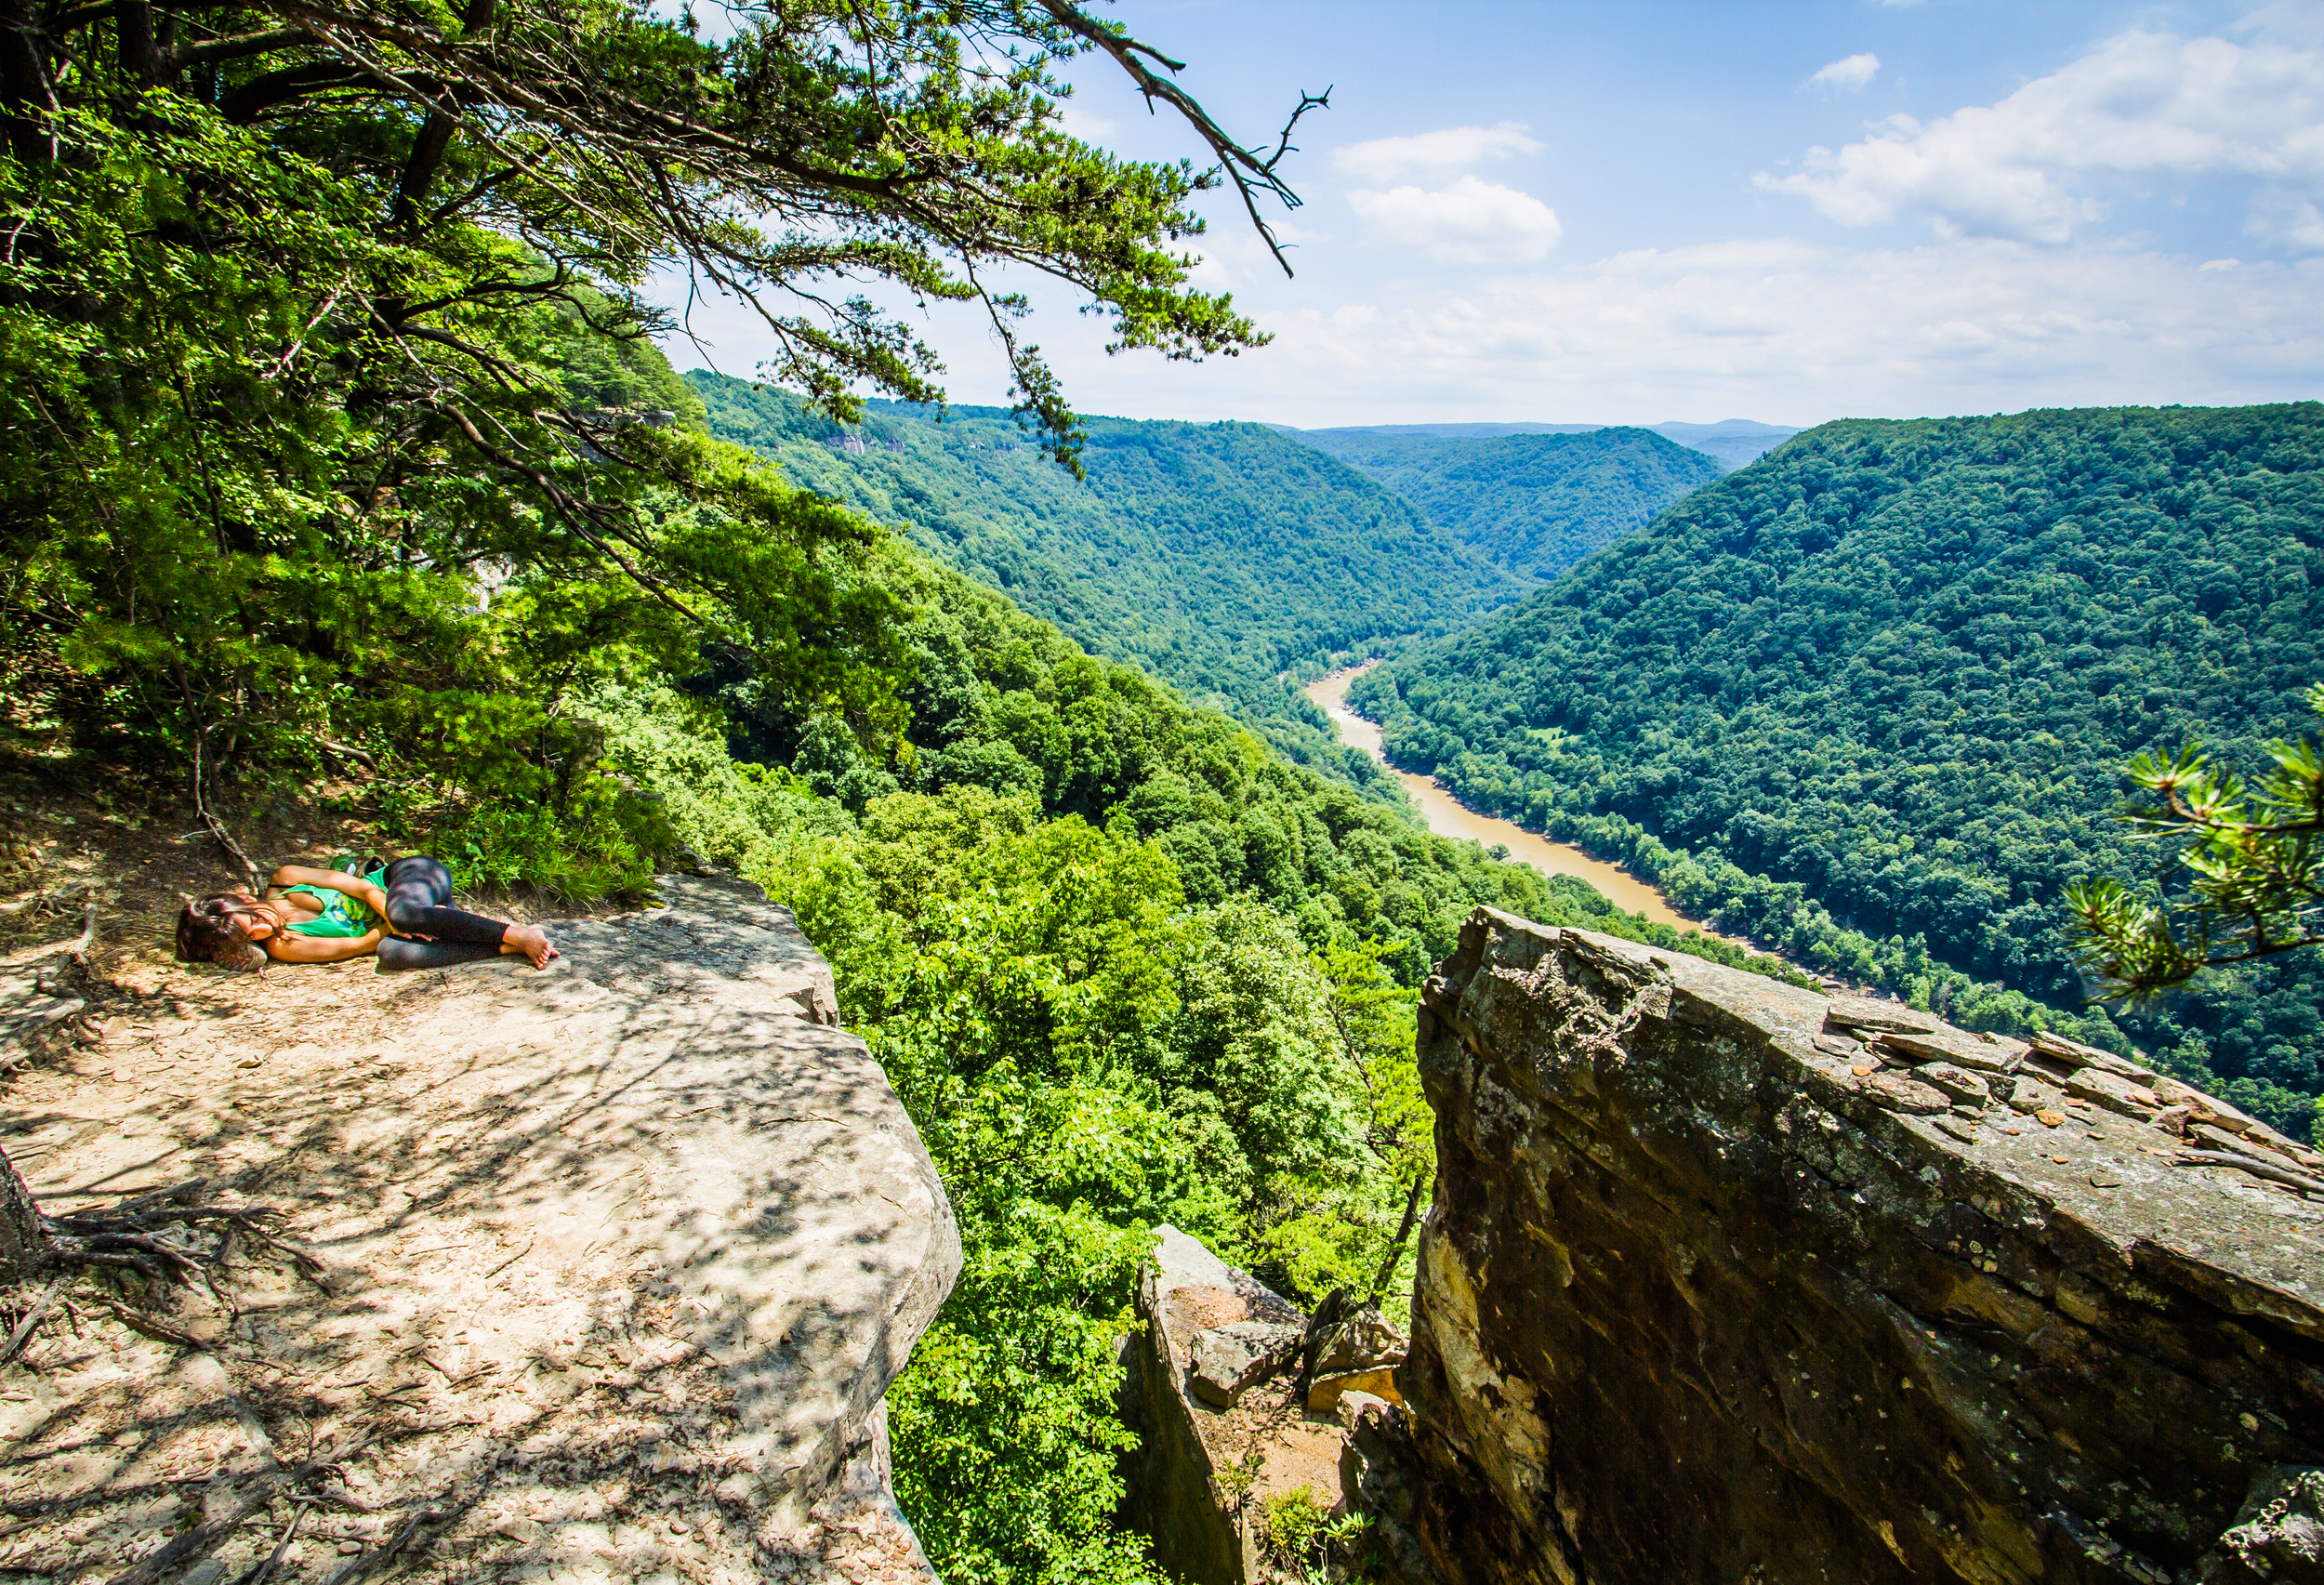 Endless wall overlook, New River Gorge